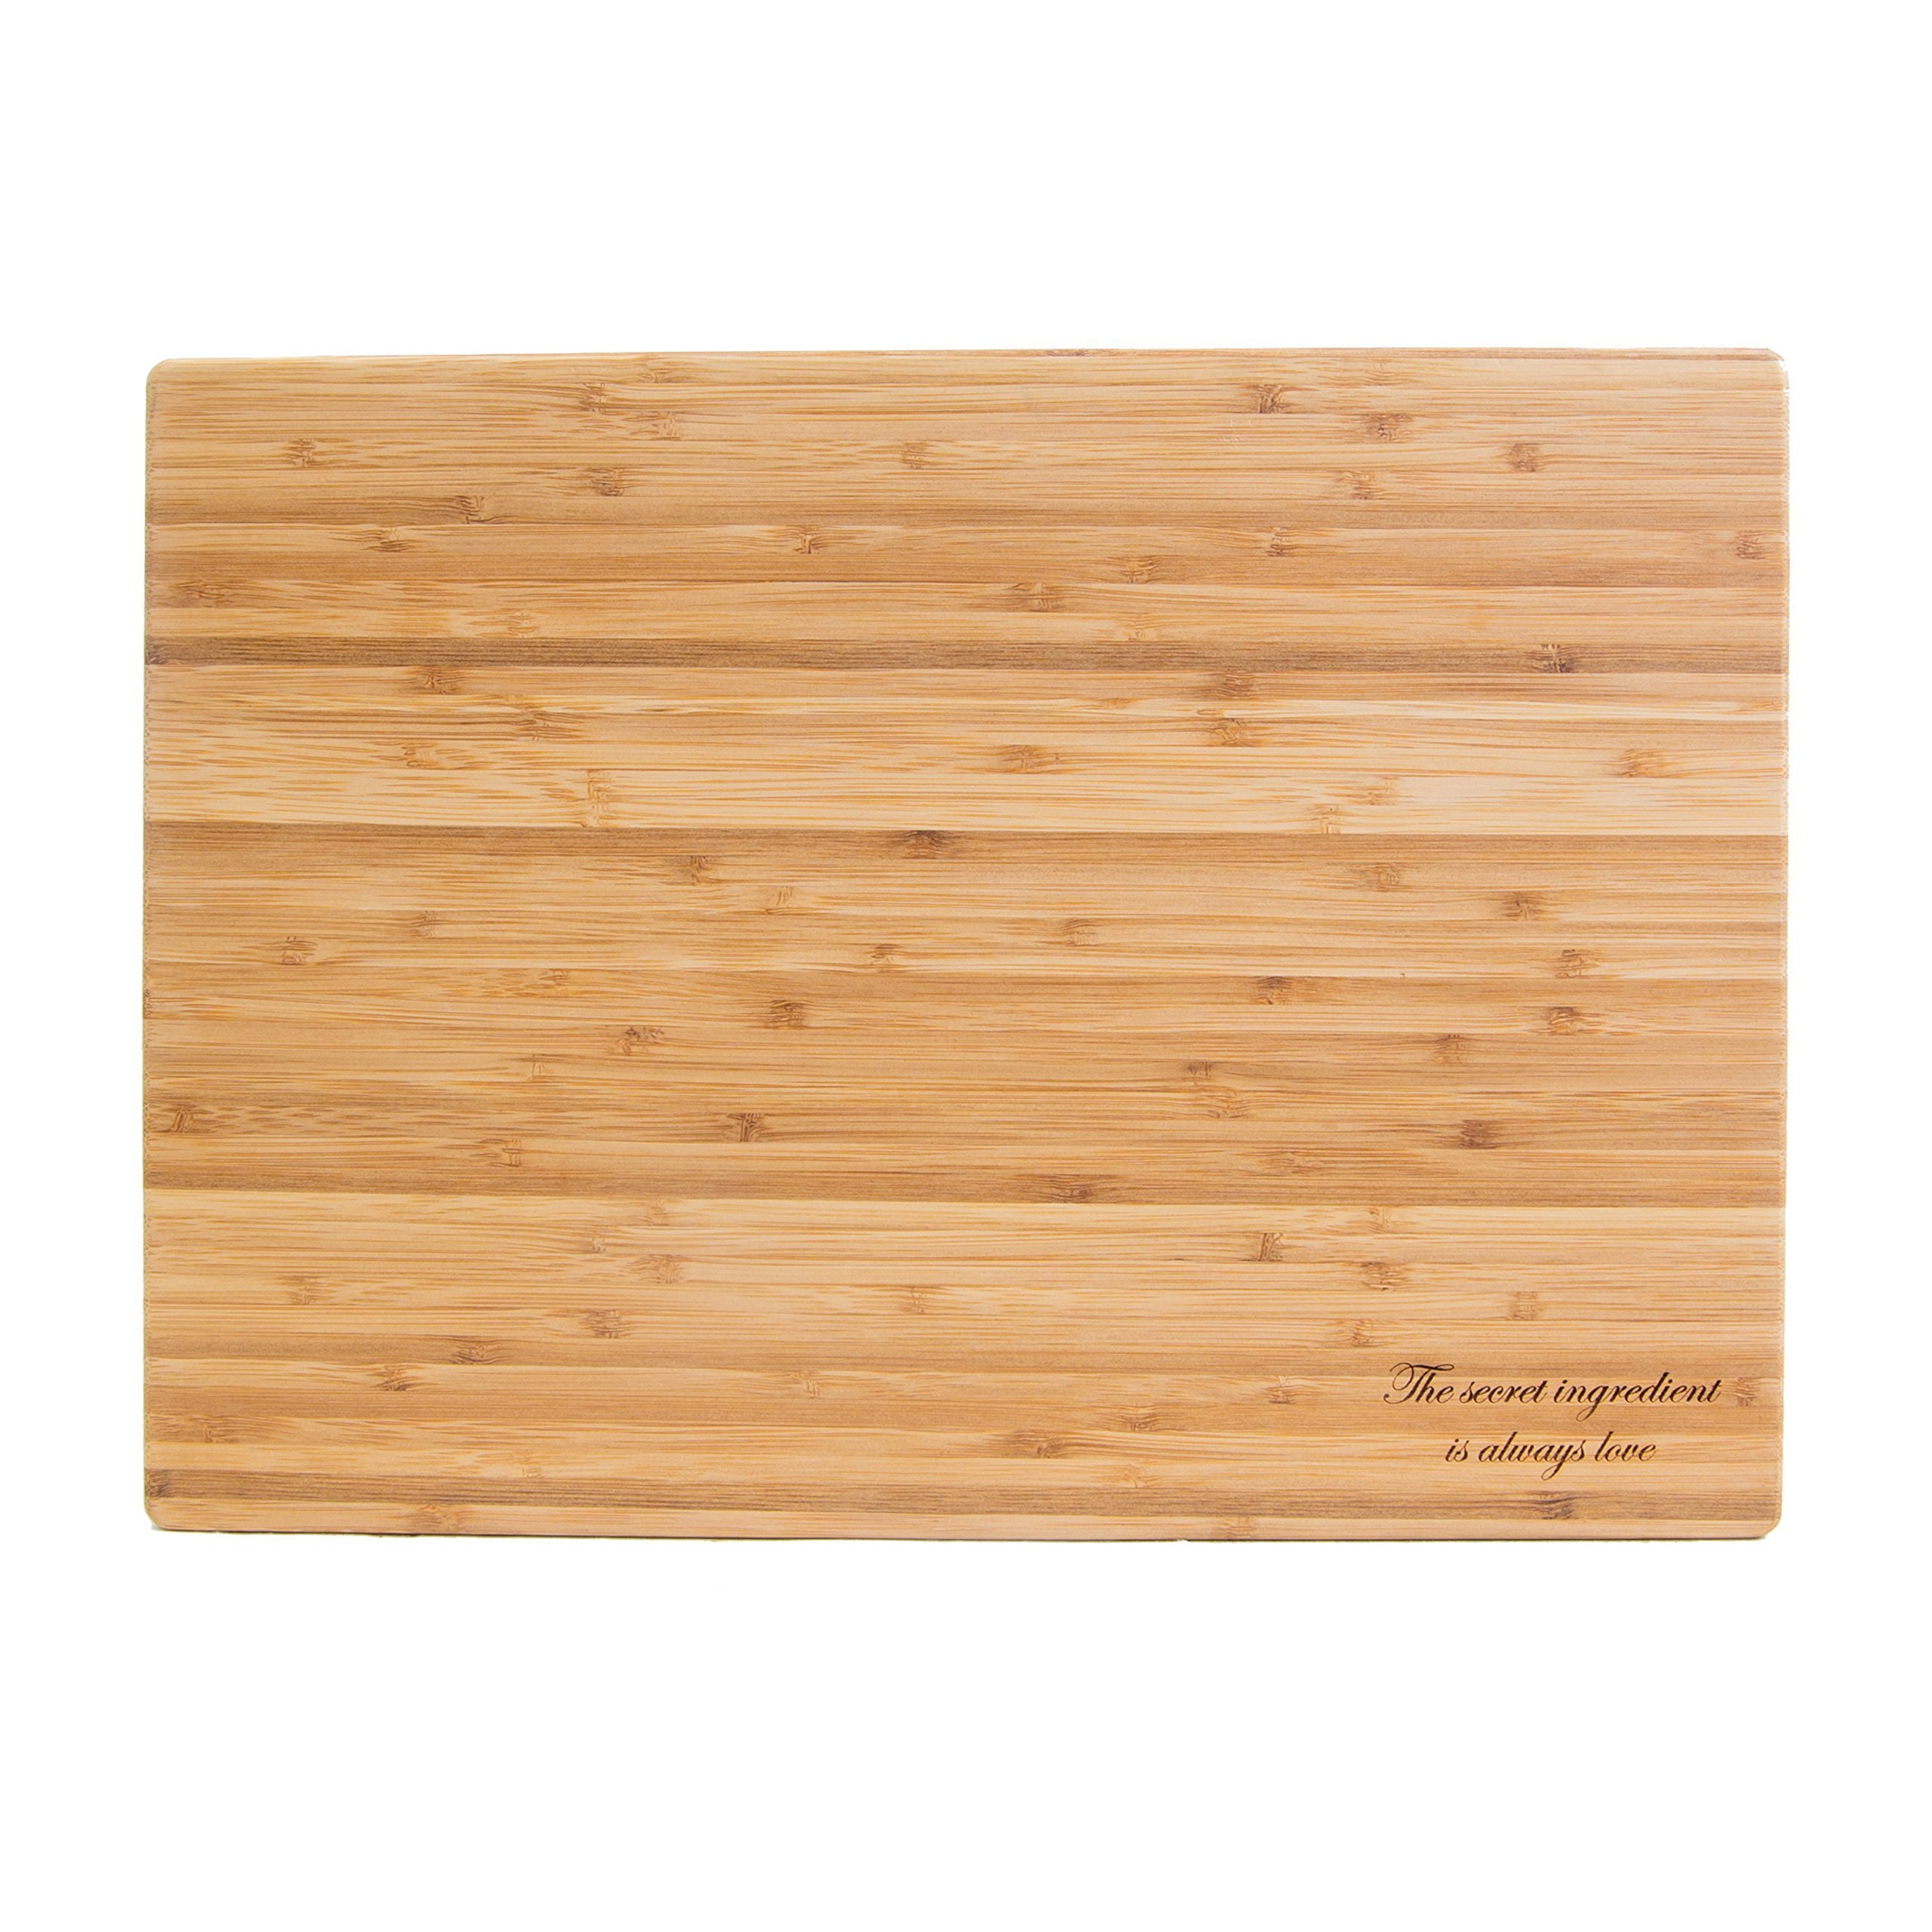 The secret ingredient is always love - Engraved premium quality bamboo cutting board - PERFECT Mother's Day, Engagement, Wedding, Housewarming, Birthday, Small Appliance Gift or Decor - Made in USA